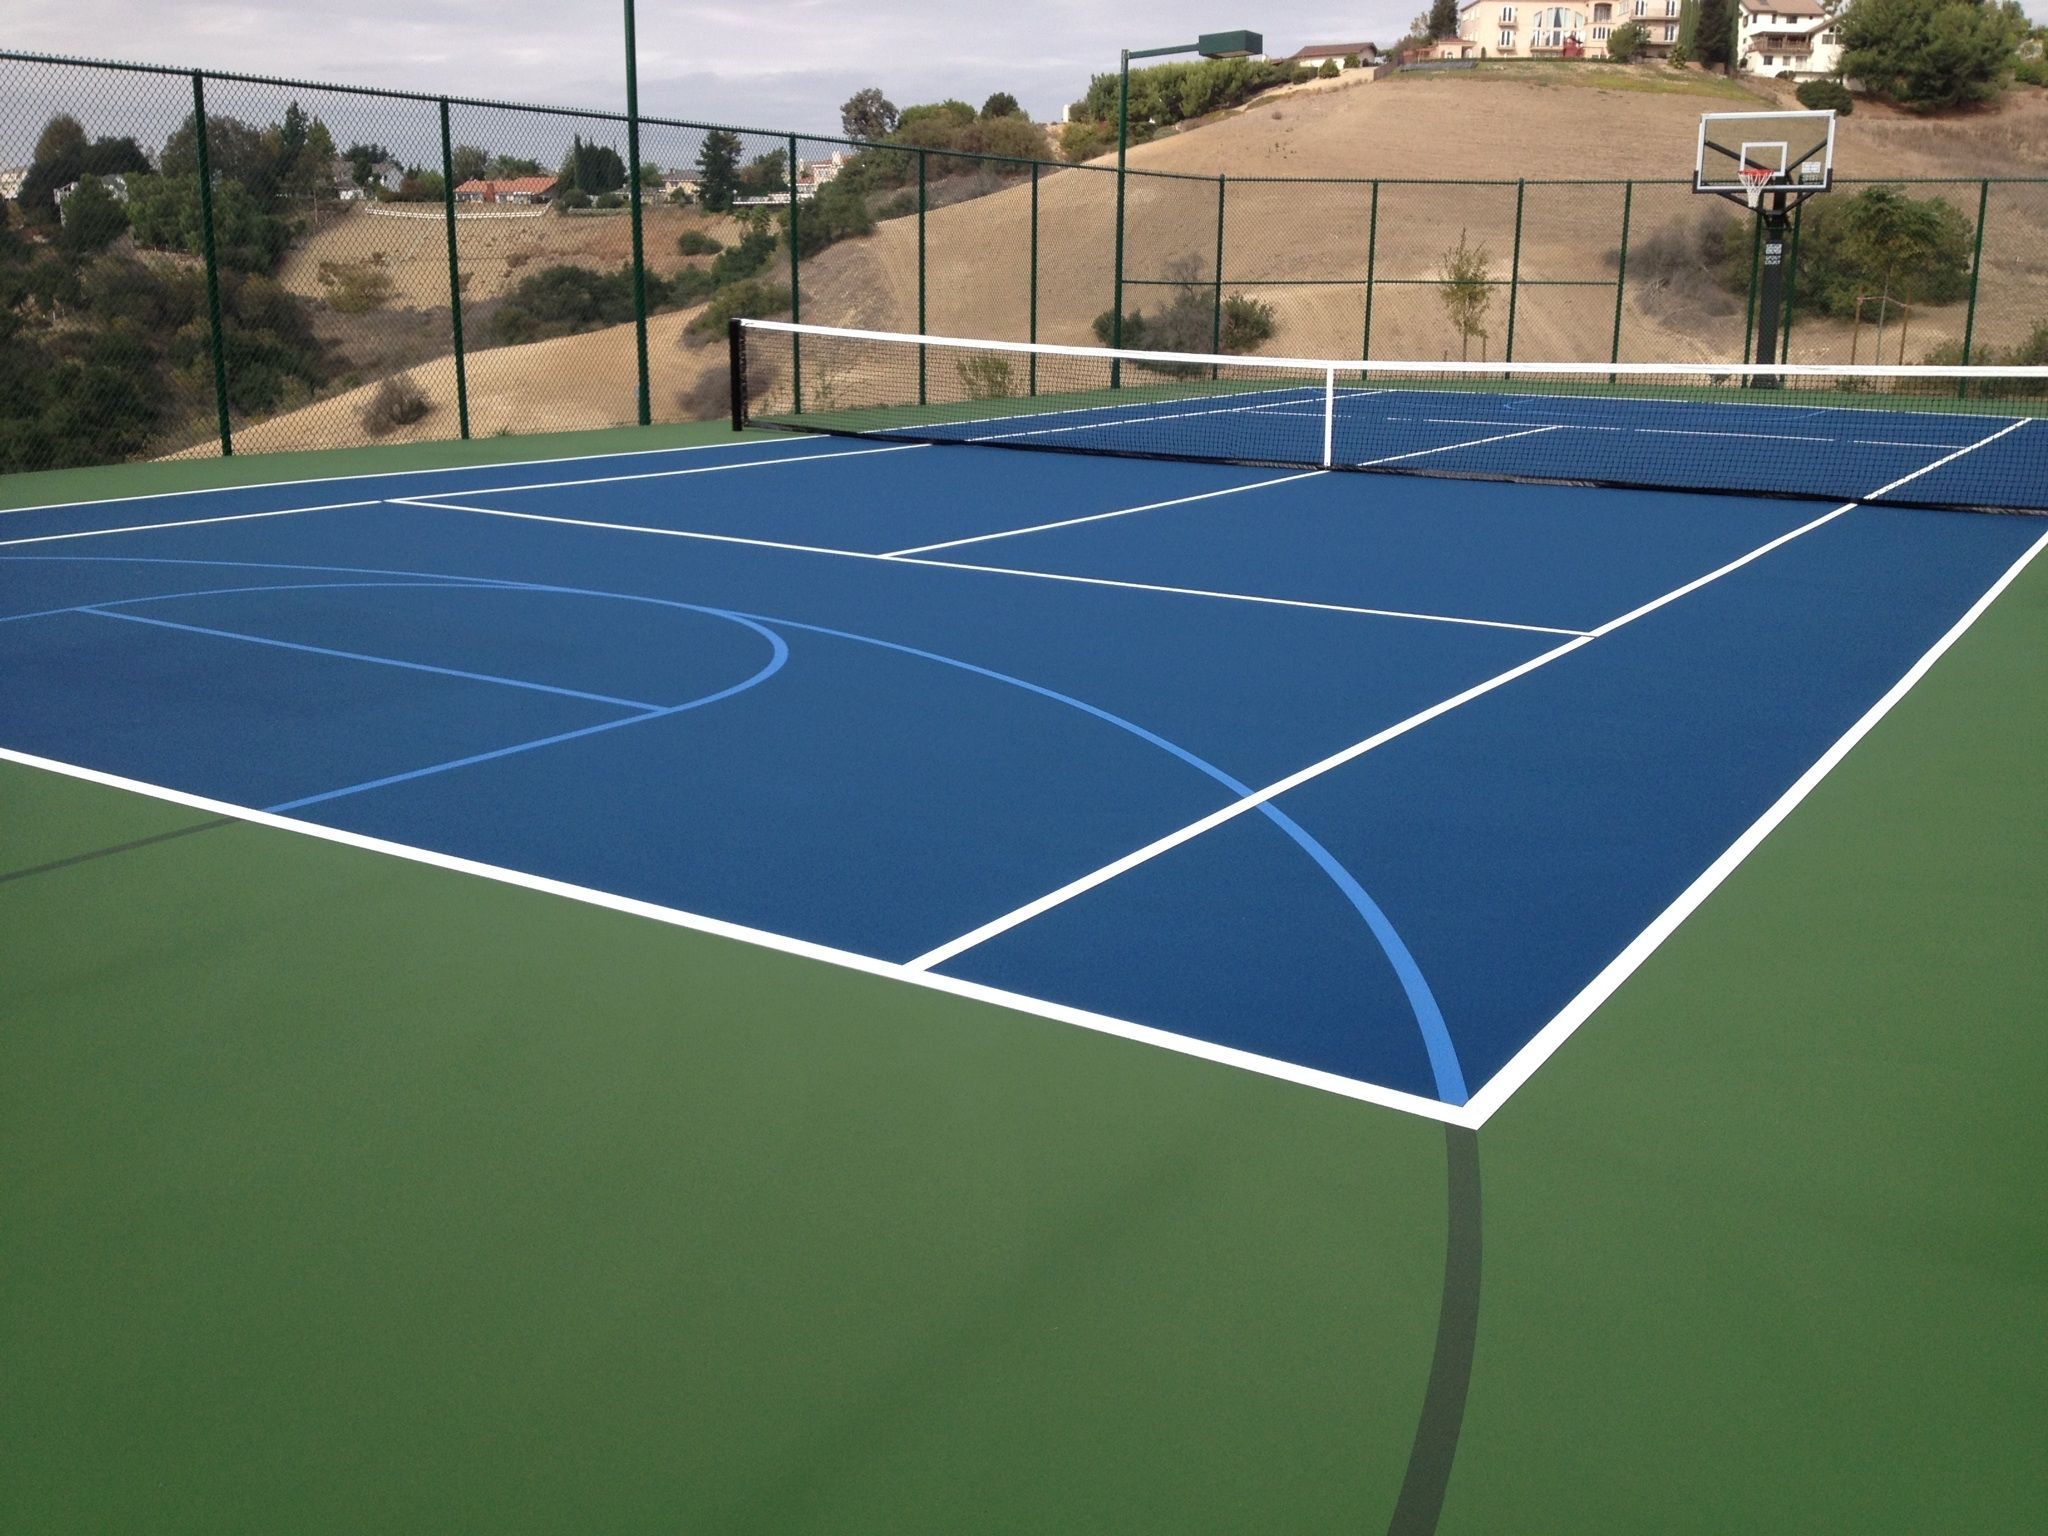 How Much Would An Indoor Tennis Court Cost To Build